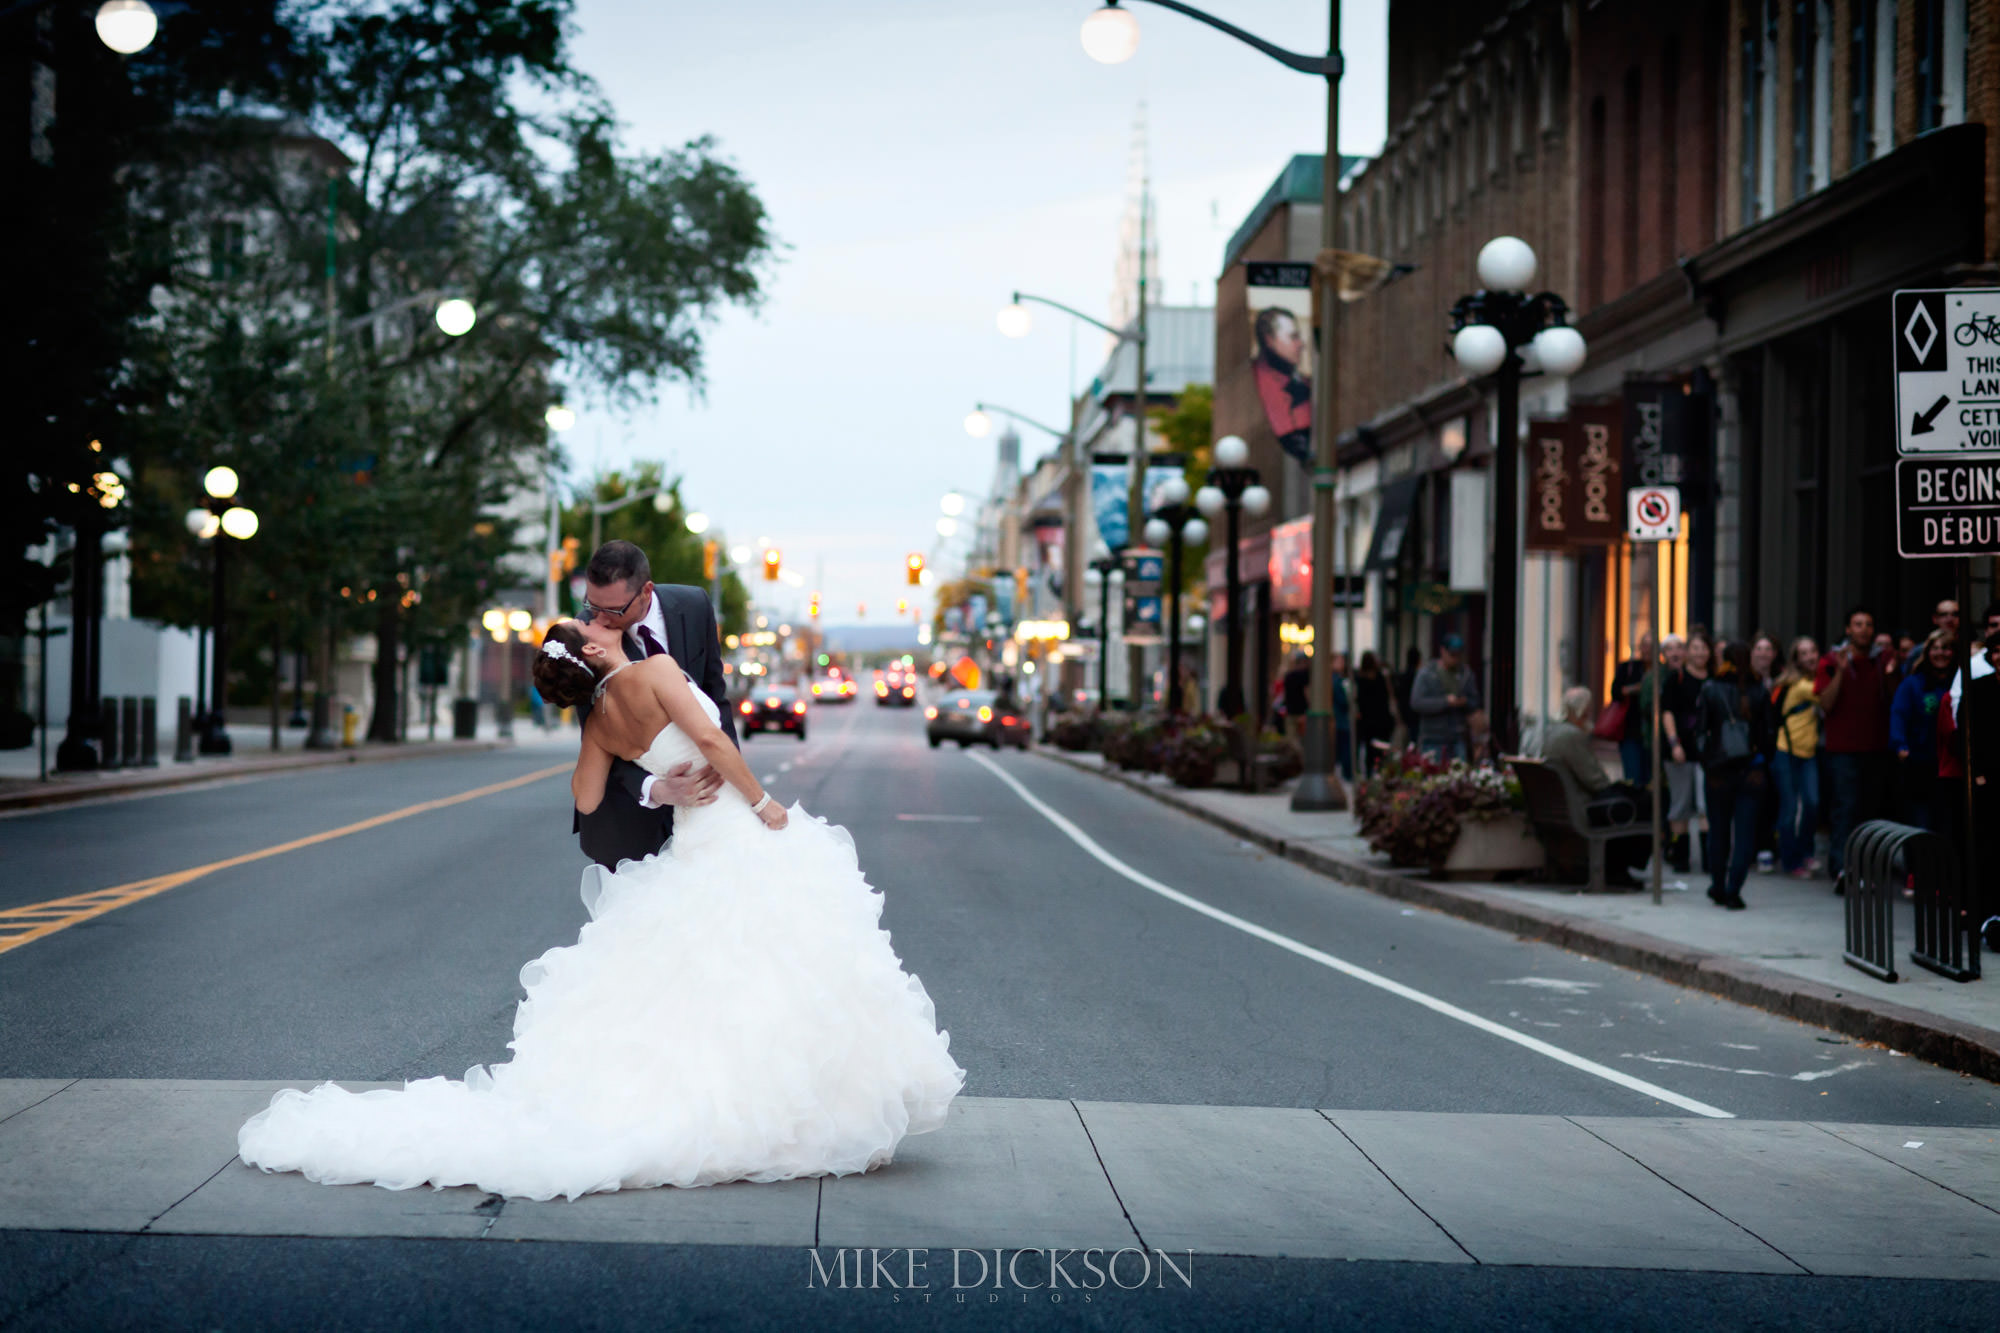 Byward Market, Magic, Ontario, Ottawa, Summer, Wedding, © Mike Dickson